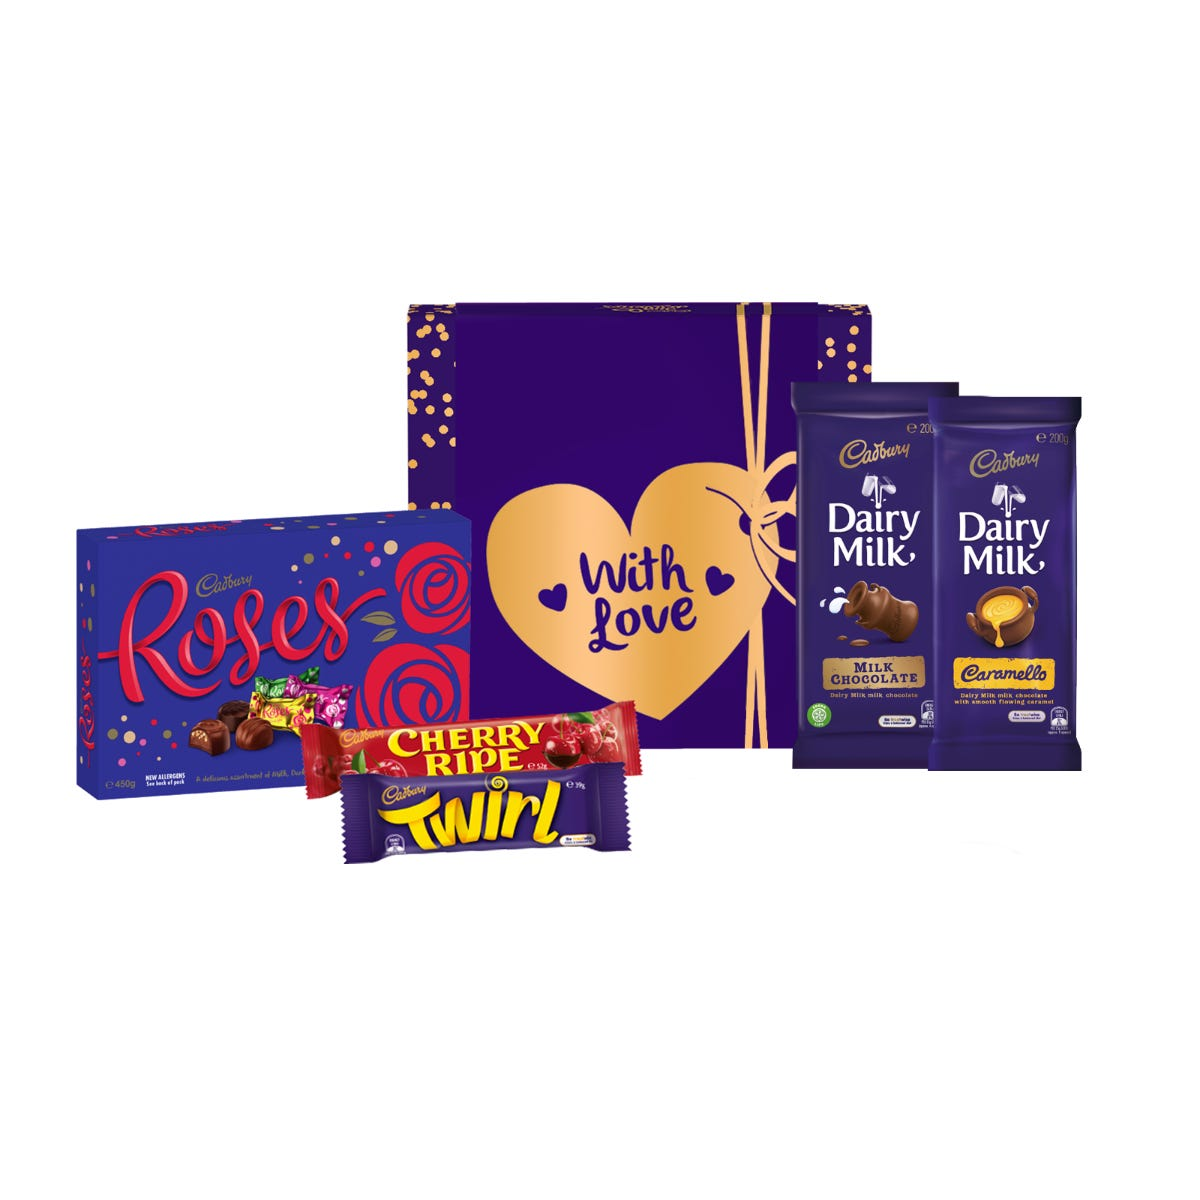 Cadbury Roses Hamper - Small - With Love